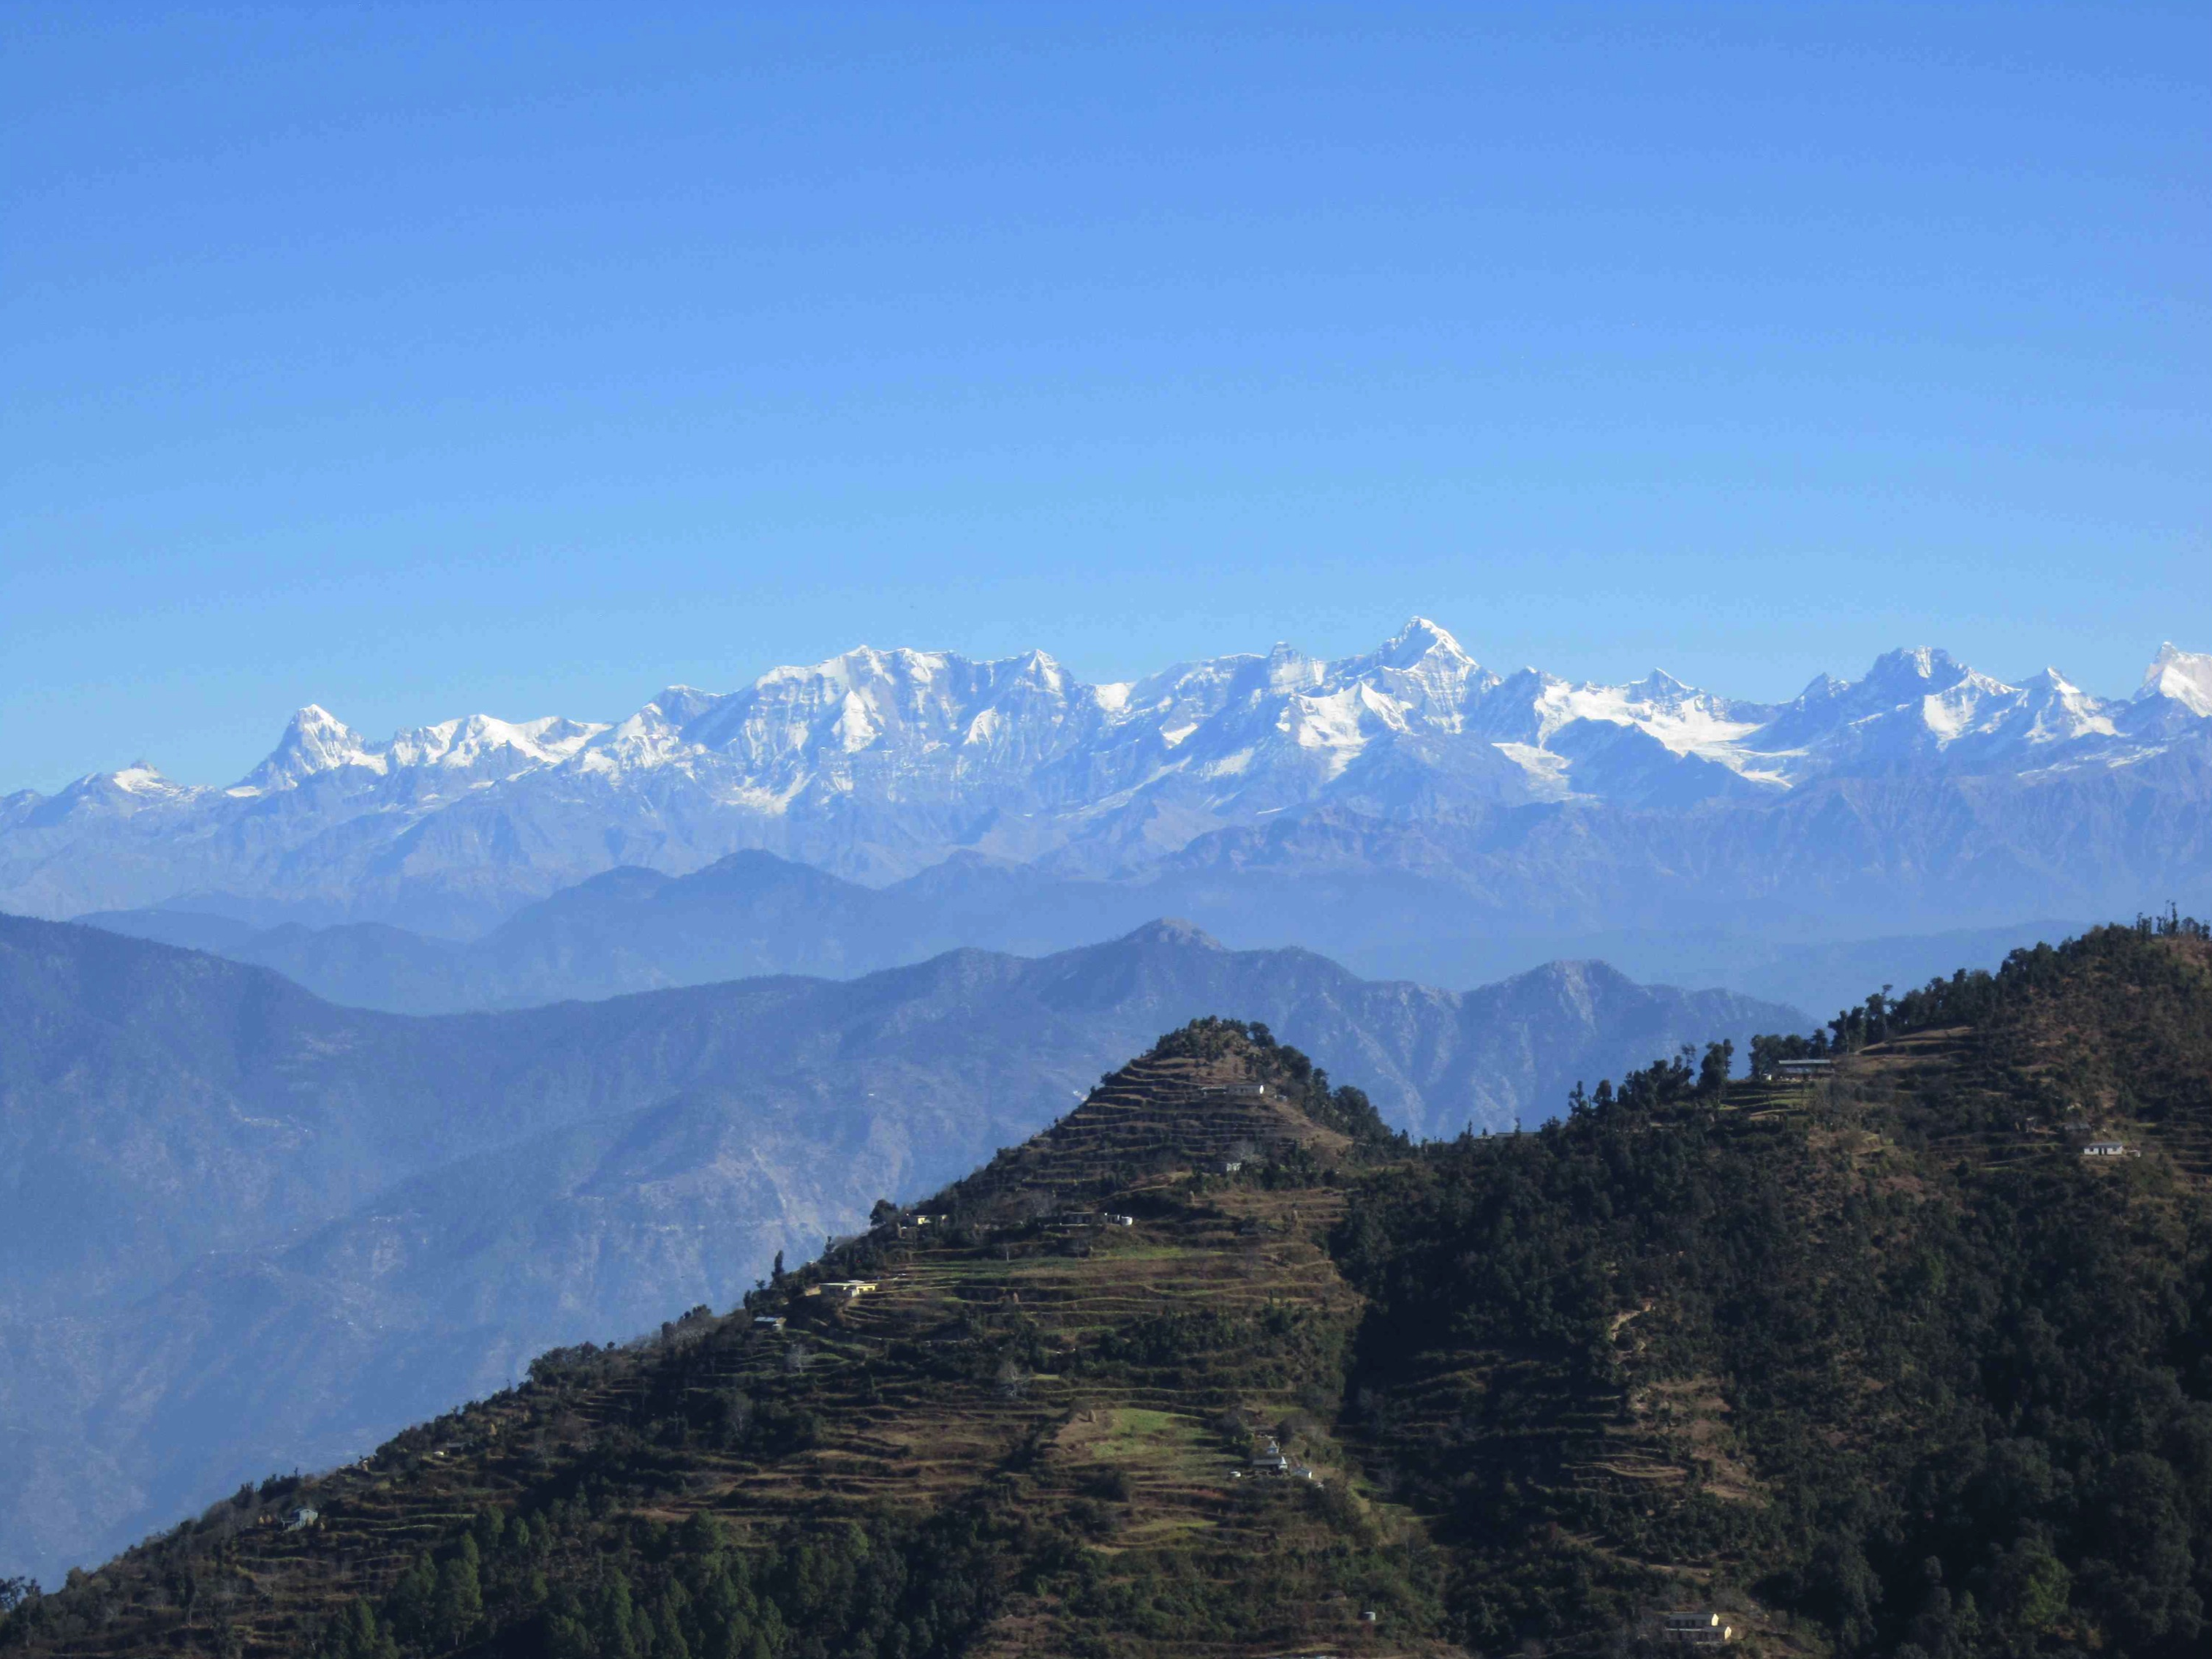 Water security in South Asia's Himalayan water towers